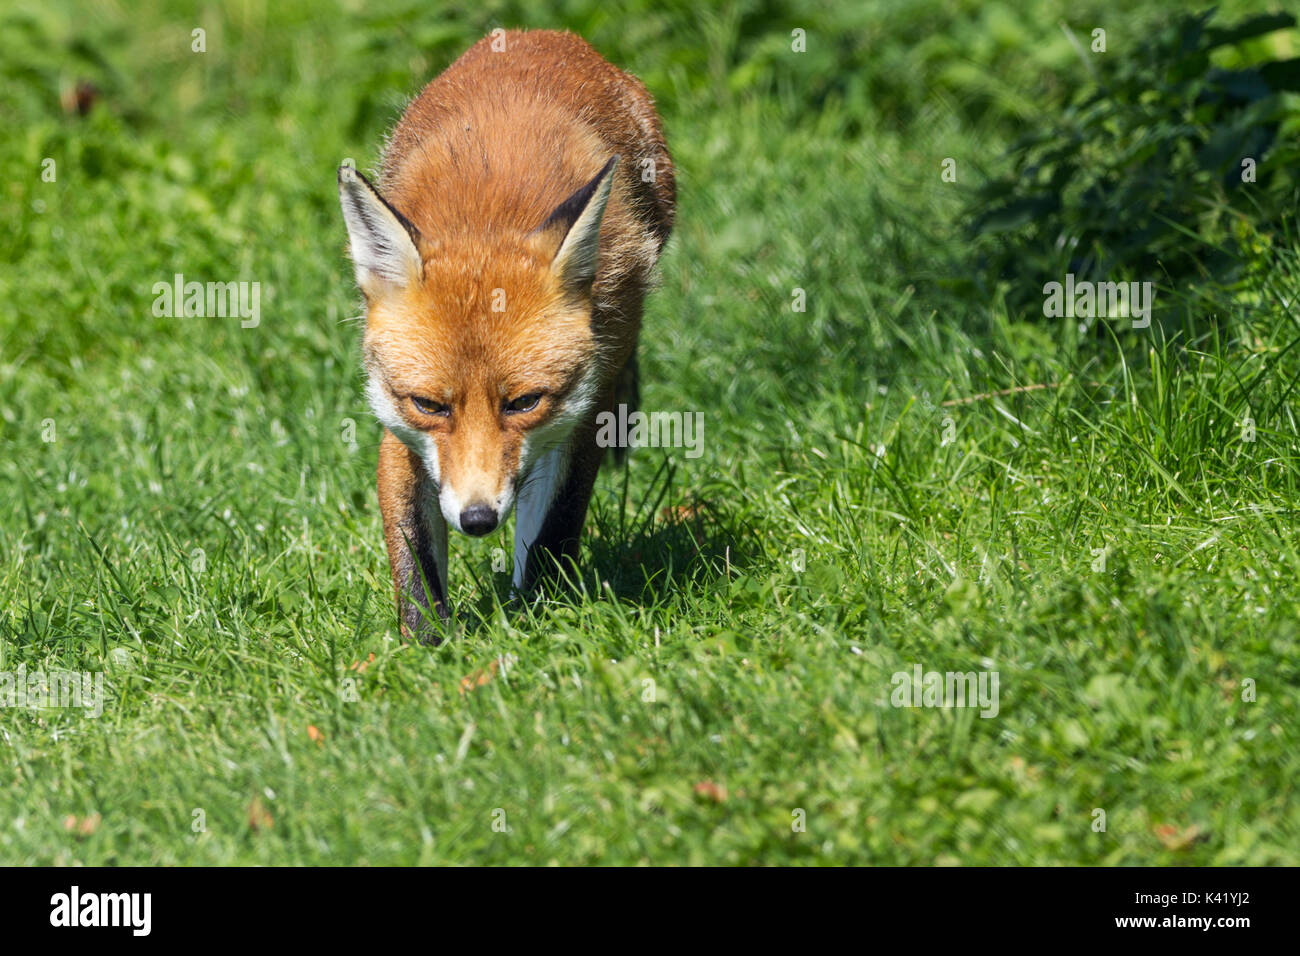 Fox Vulpes vulpes dog like mammal relaxing in some good weather. Orange red fur and bushy tail. This fox is at the - Stock Image